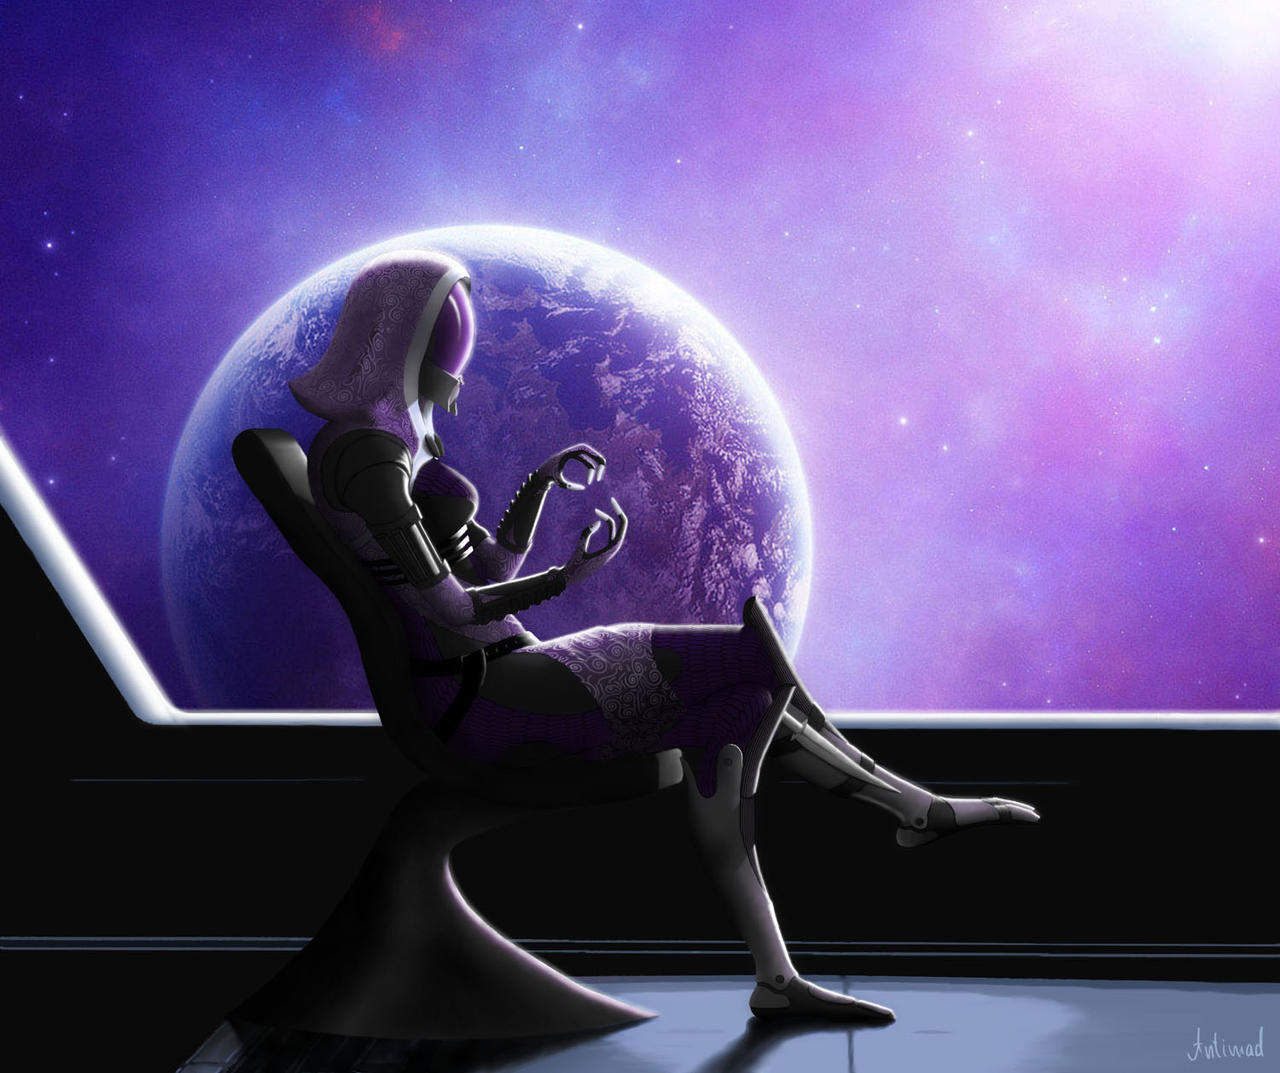 Tali in the chair by Antimad1